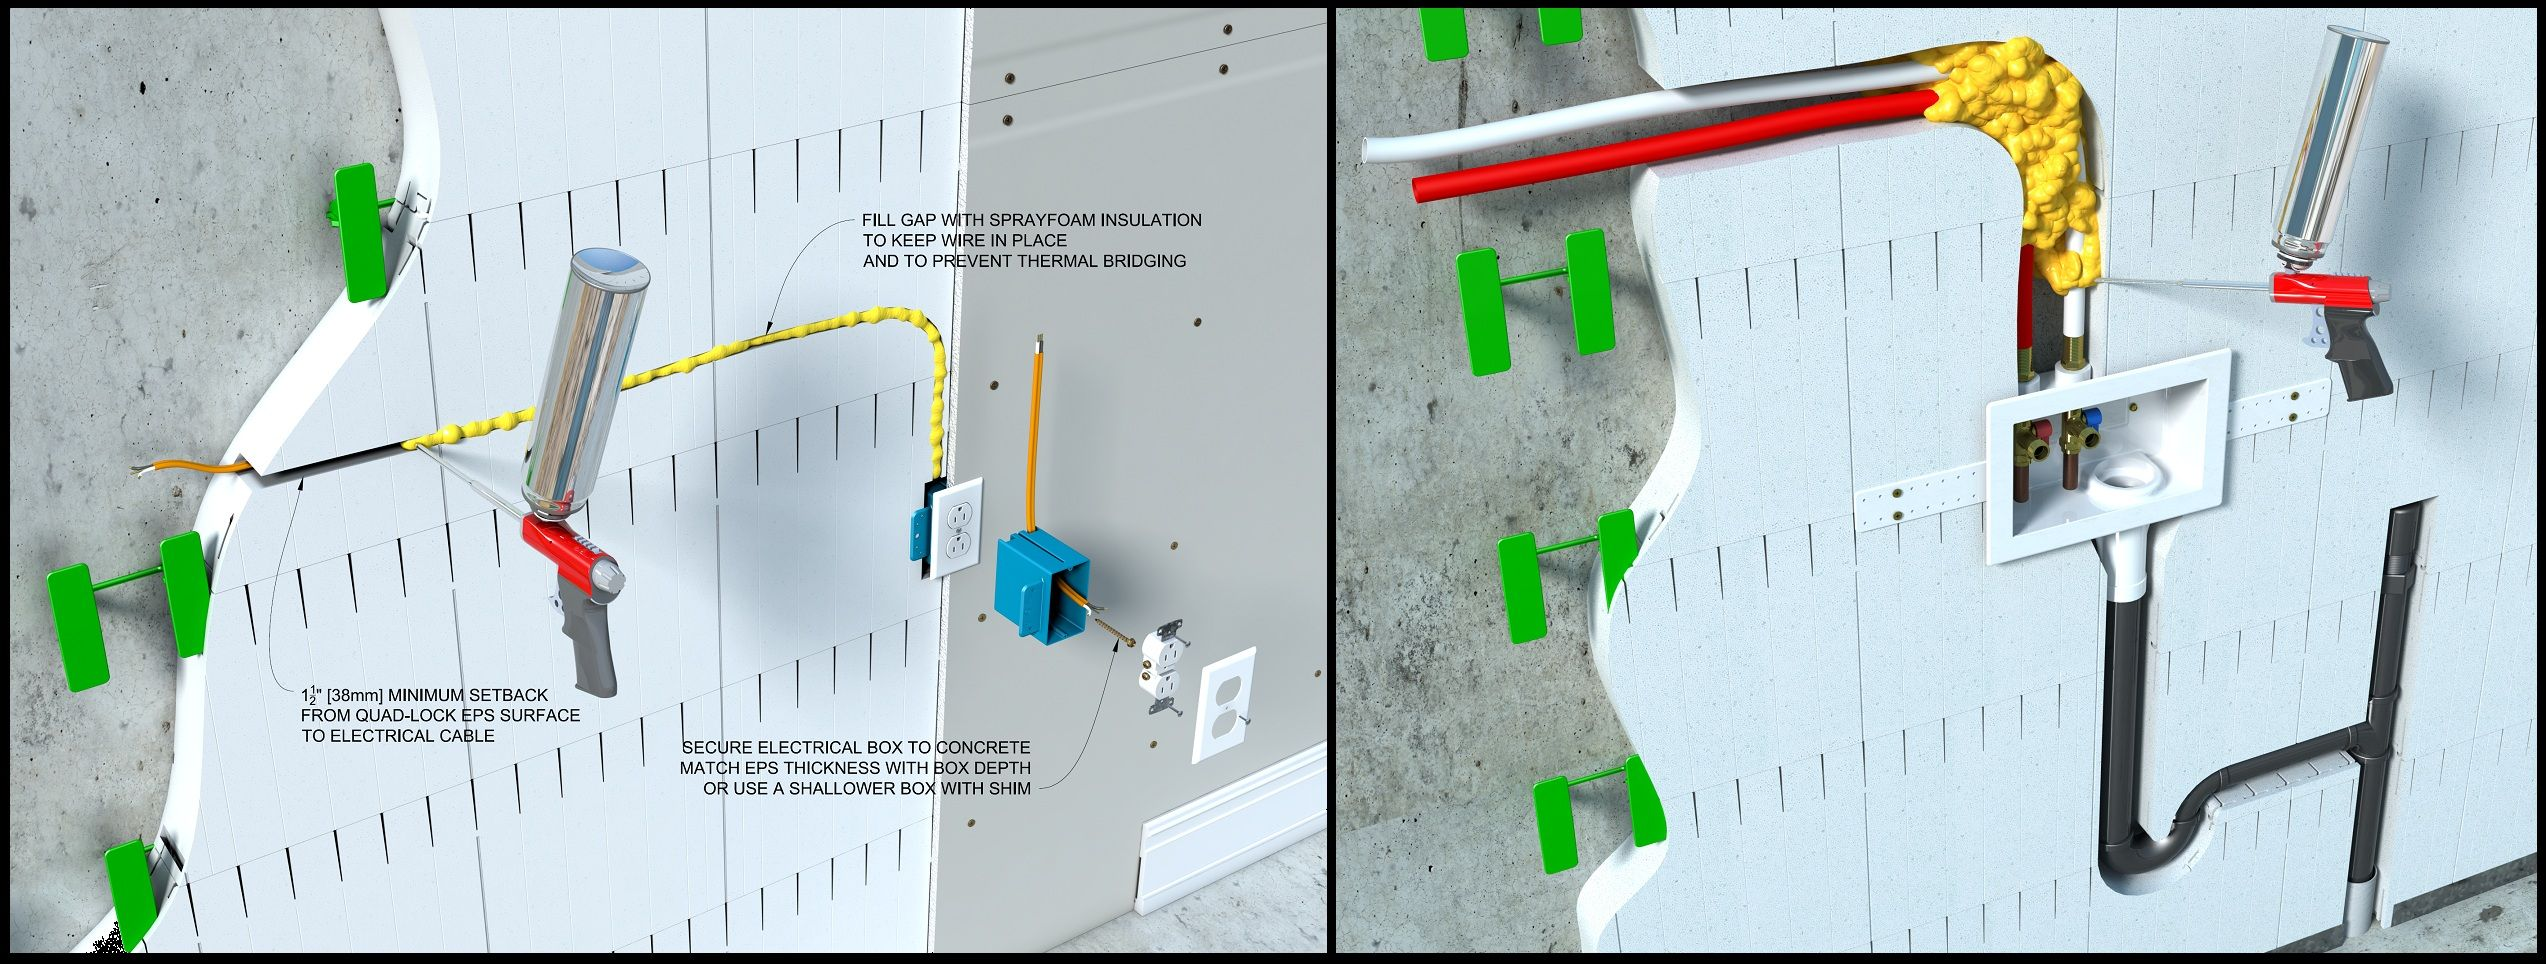 Pin By Mohamad Nahlawi On Icf Pinterest Insulated Concrete Forms Intersection Wiring Diagram Http Quadlockcom Images Drawings